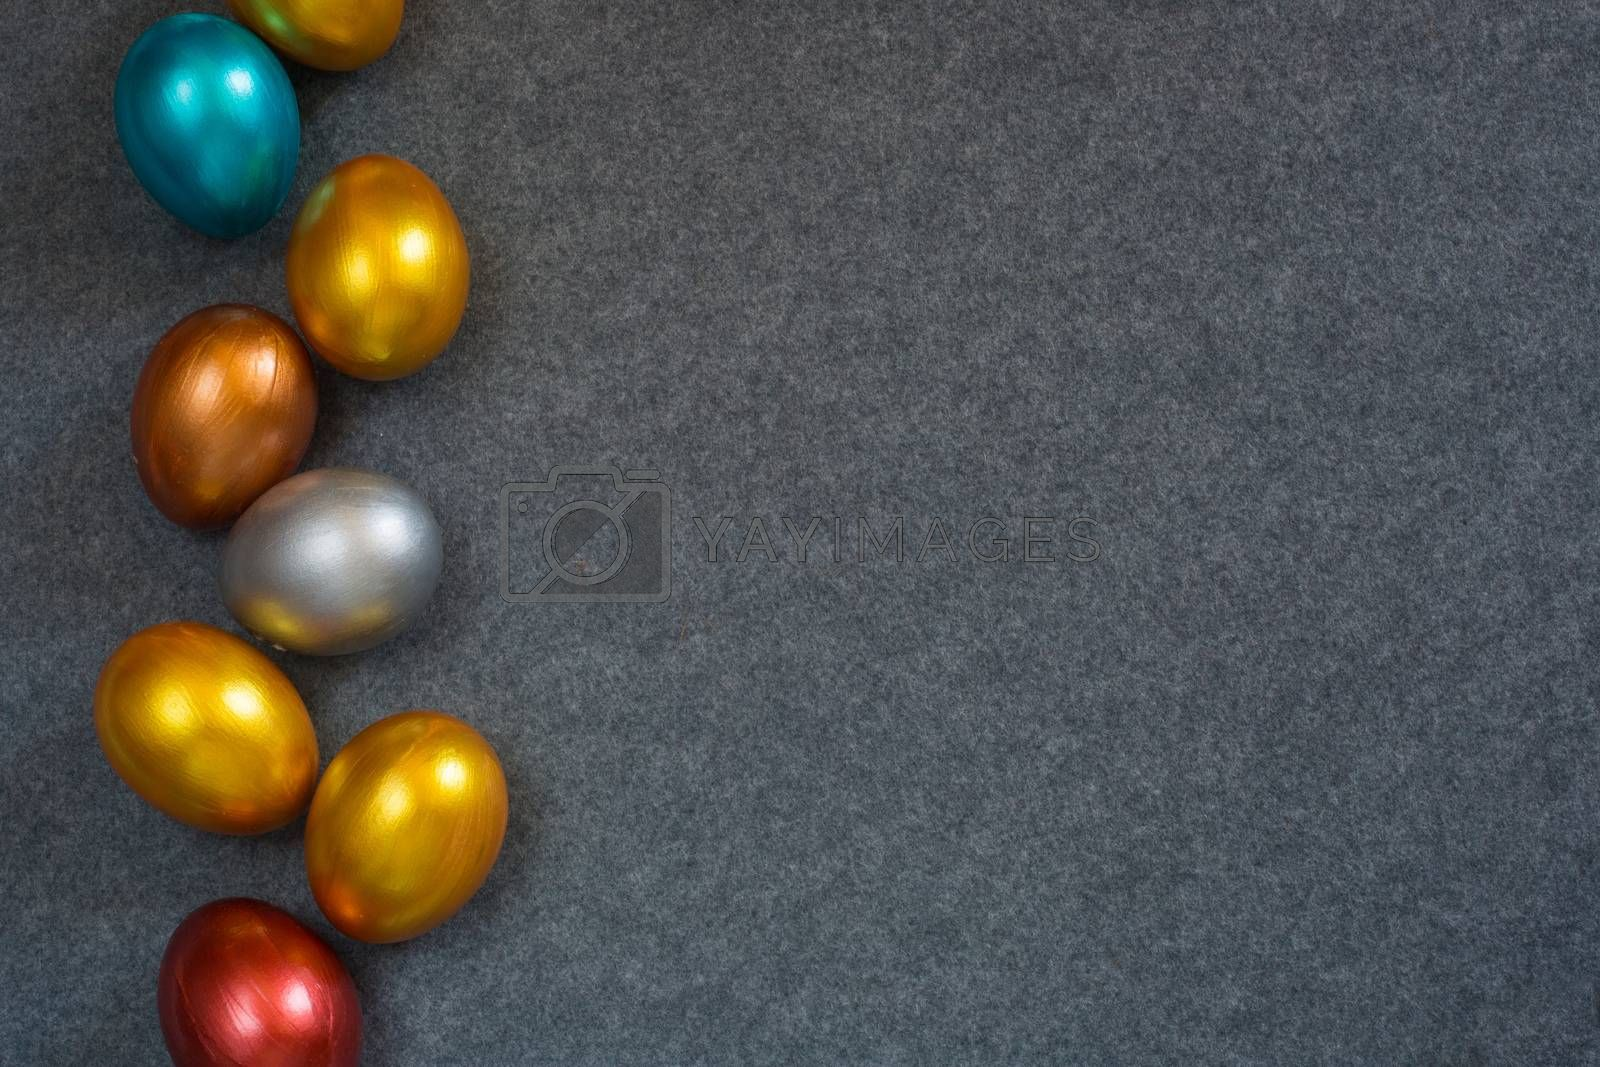 Elegant fashion background with border frame of decorative color metallic Easter eggs on textile background, copy space for text. Top view flat lay